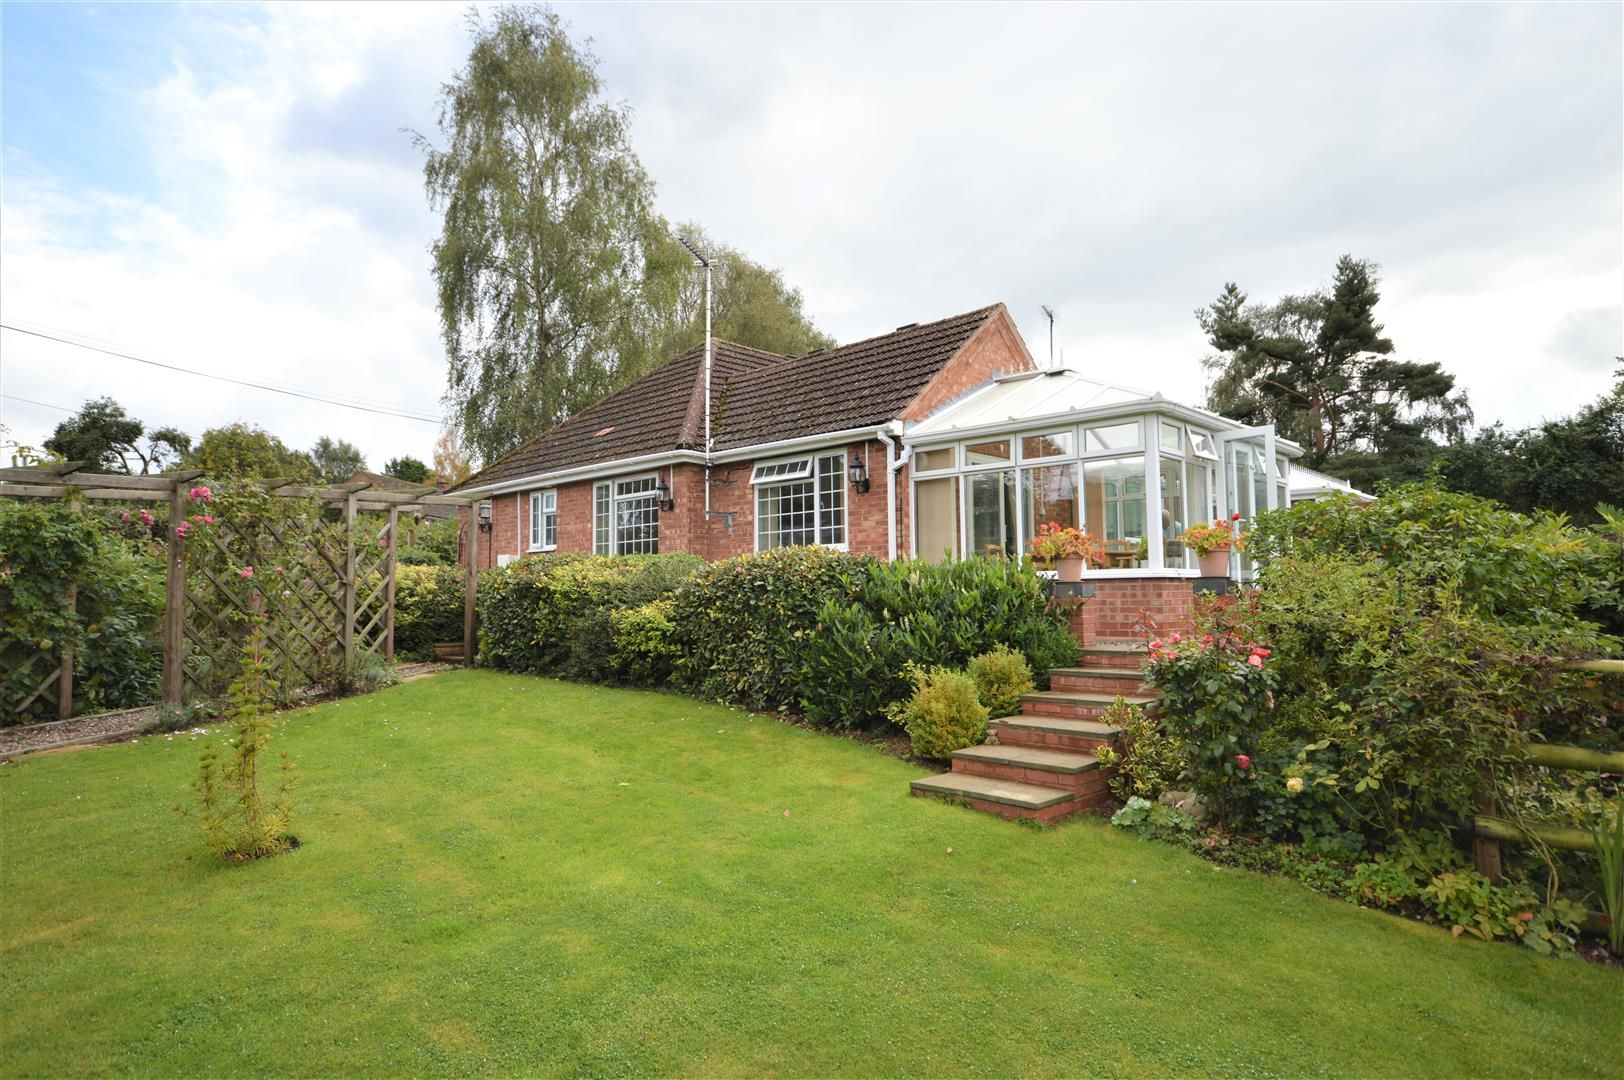 3 bed semi-detached-bungalow for sale in Upper Hill 1